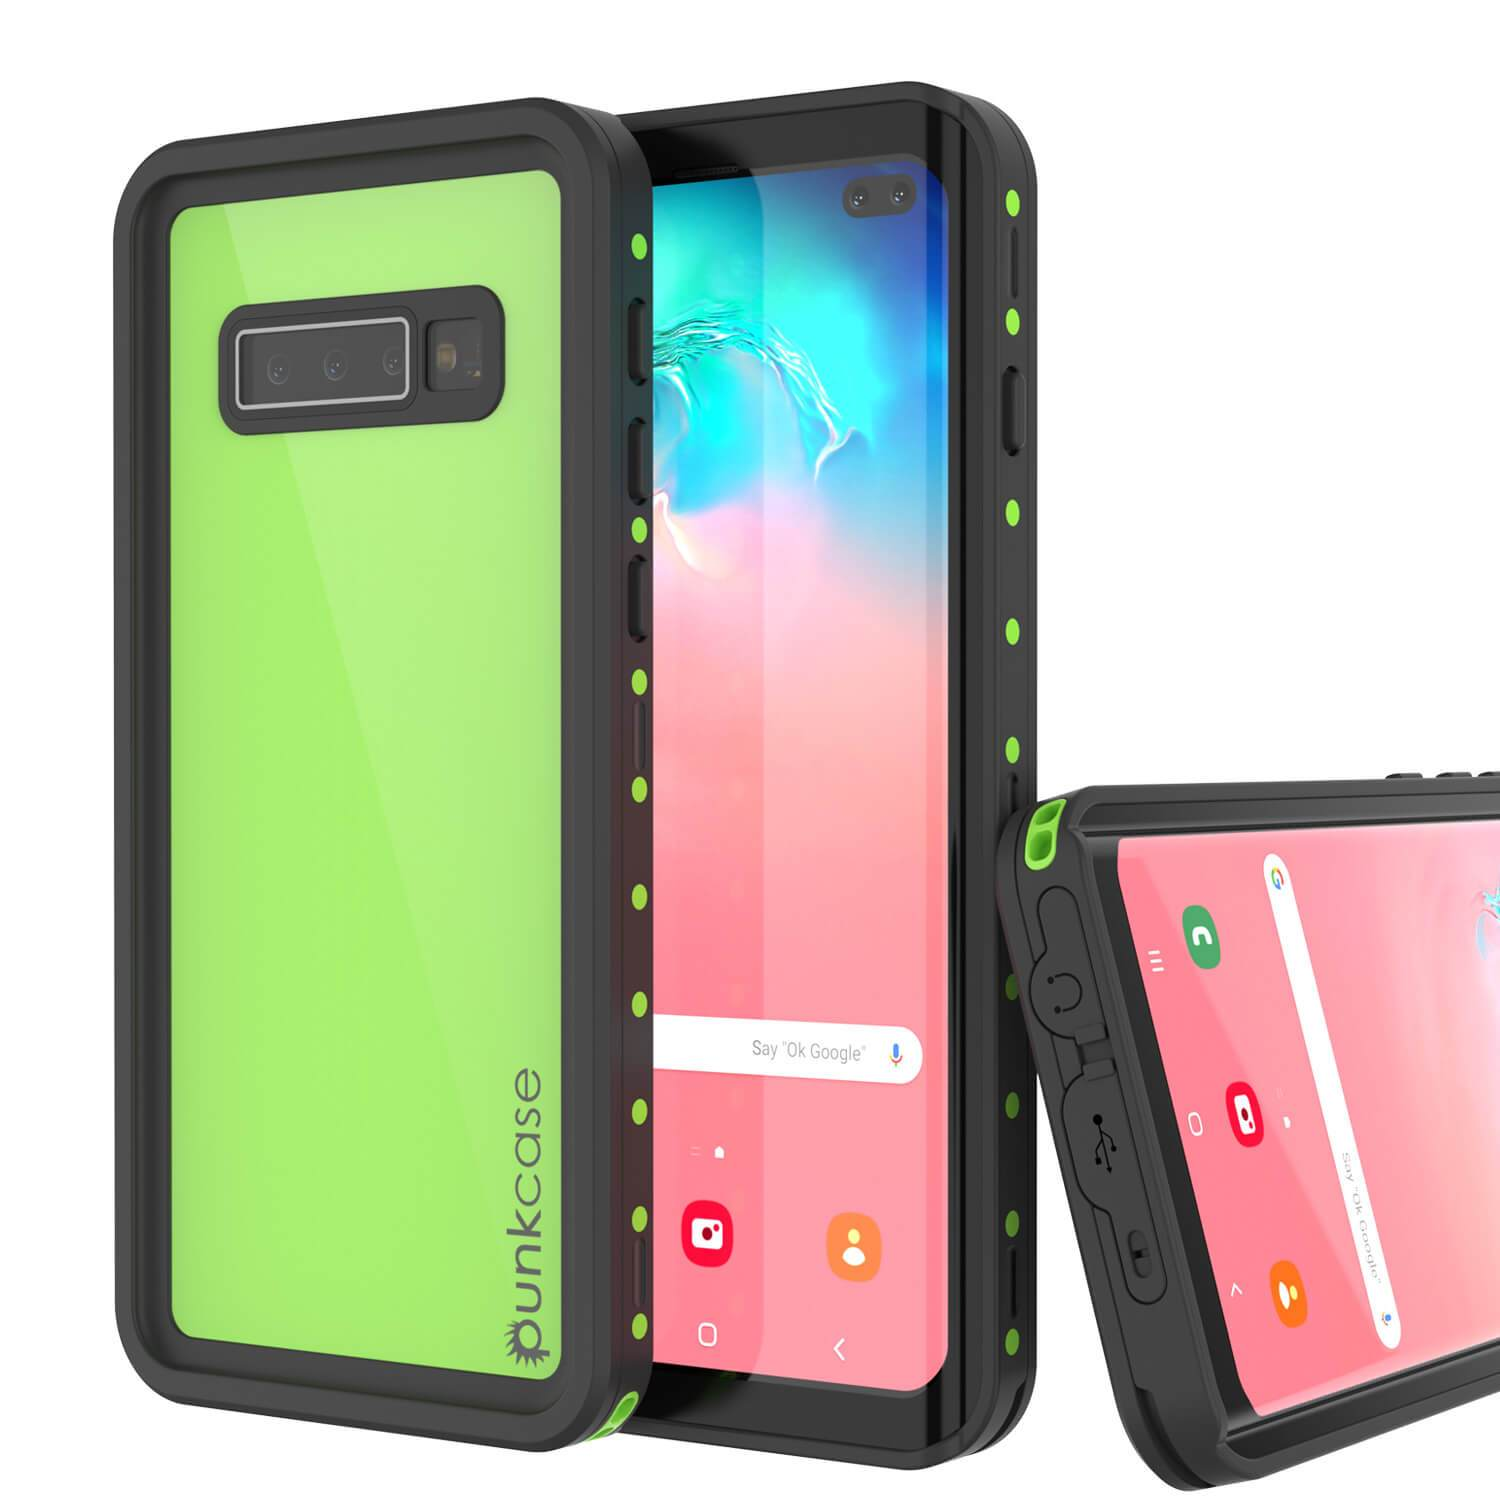 Galaxy S10+ Plus Waterproof Case PunkCase StudStar Light Green Thin 6.6ft Underwater IP68 ShockProof